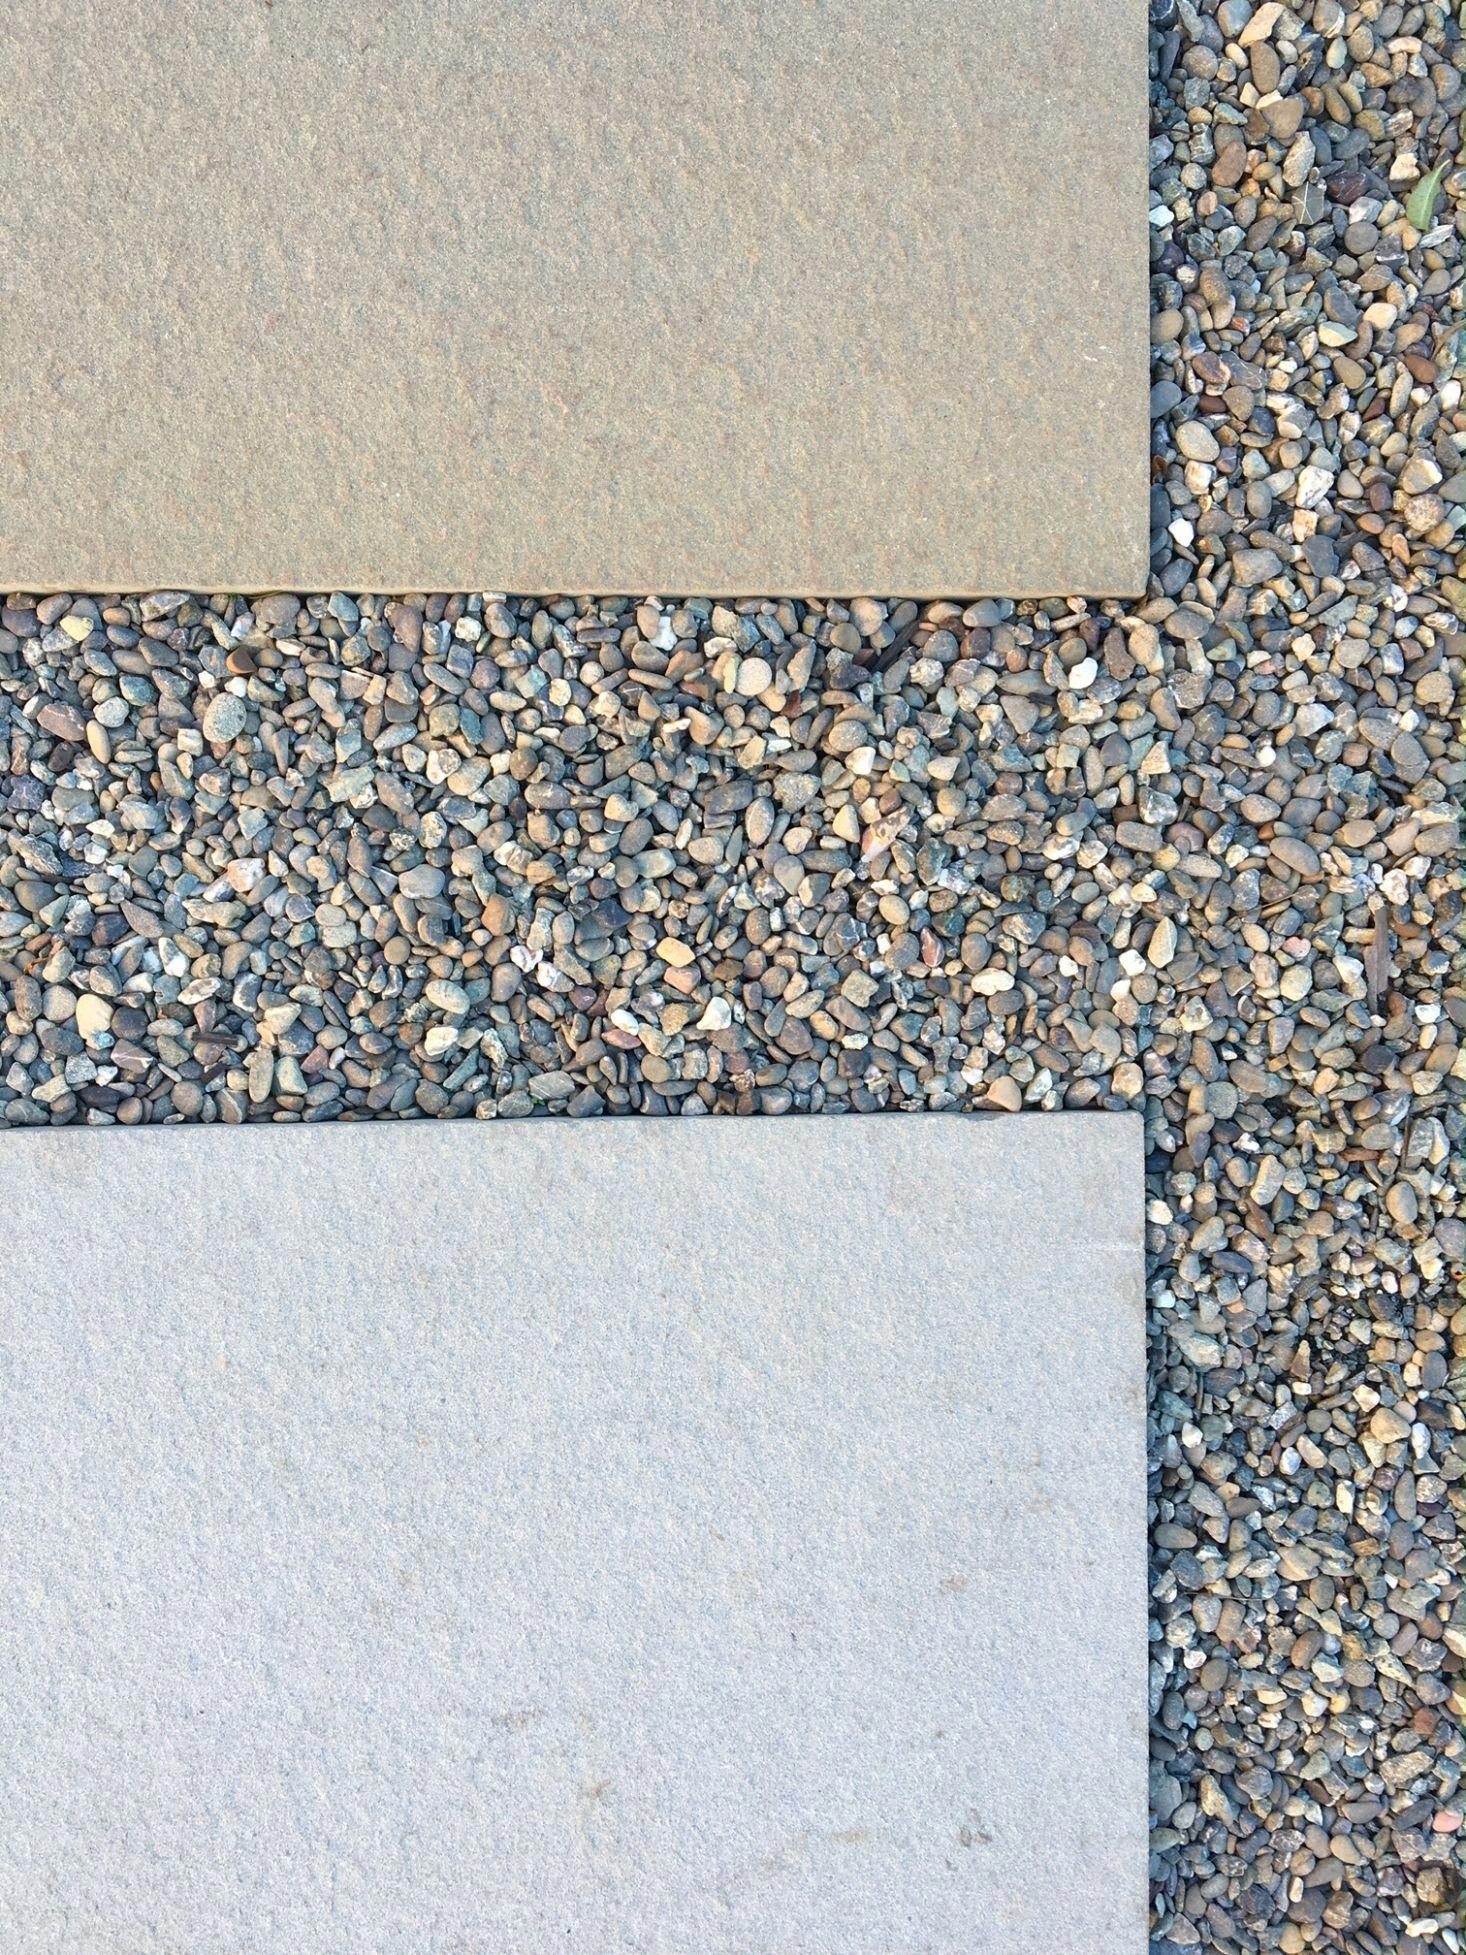 Pea Gravel Filler Is Used As A Permeable Grout Between Oversize Concrete Patio Pavers For More See Hardscaping 101 Pea Gra Backyard Landscaping Build